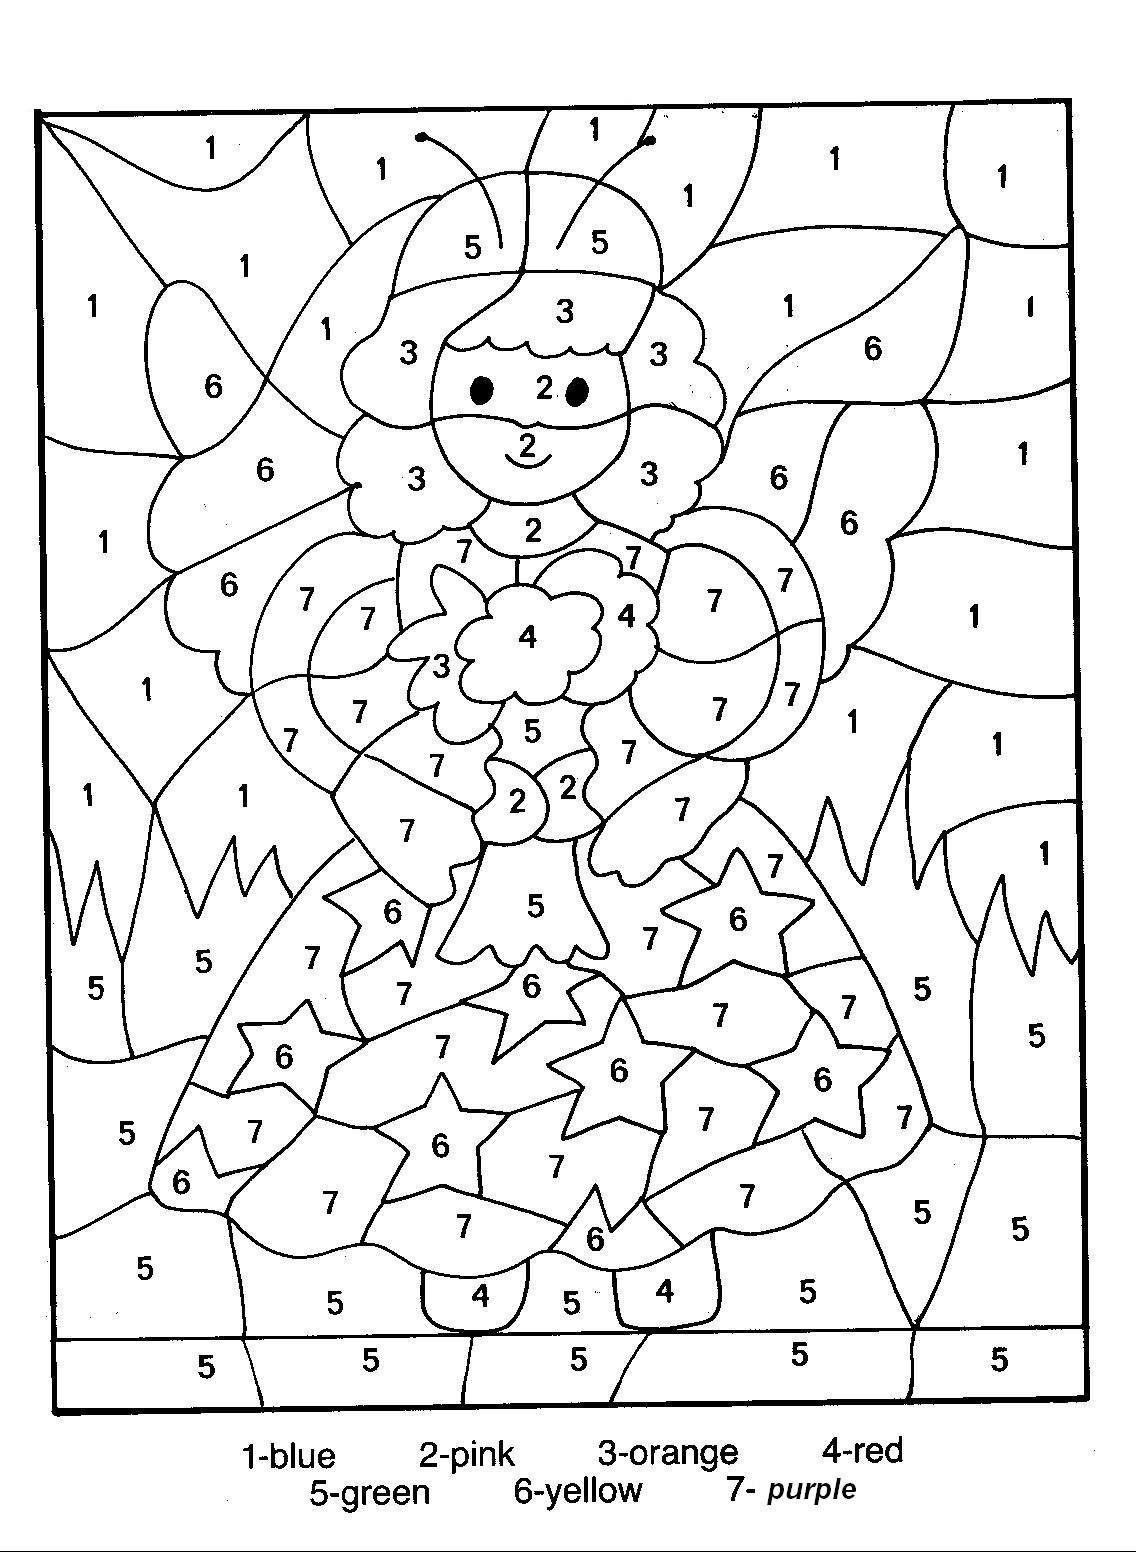 Advanced Color By Number Coloring Pages: Spongebob Color by Number ...